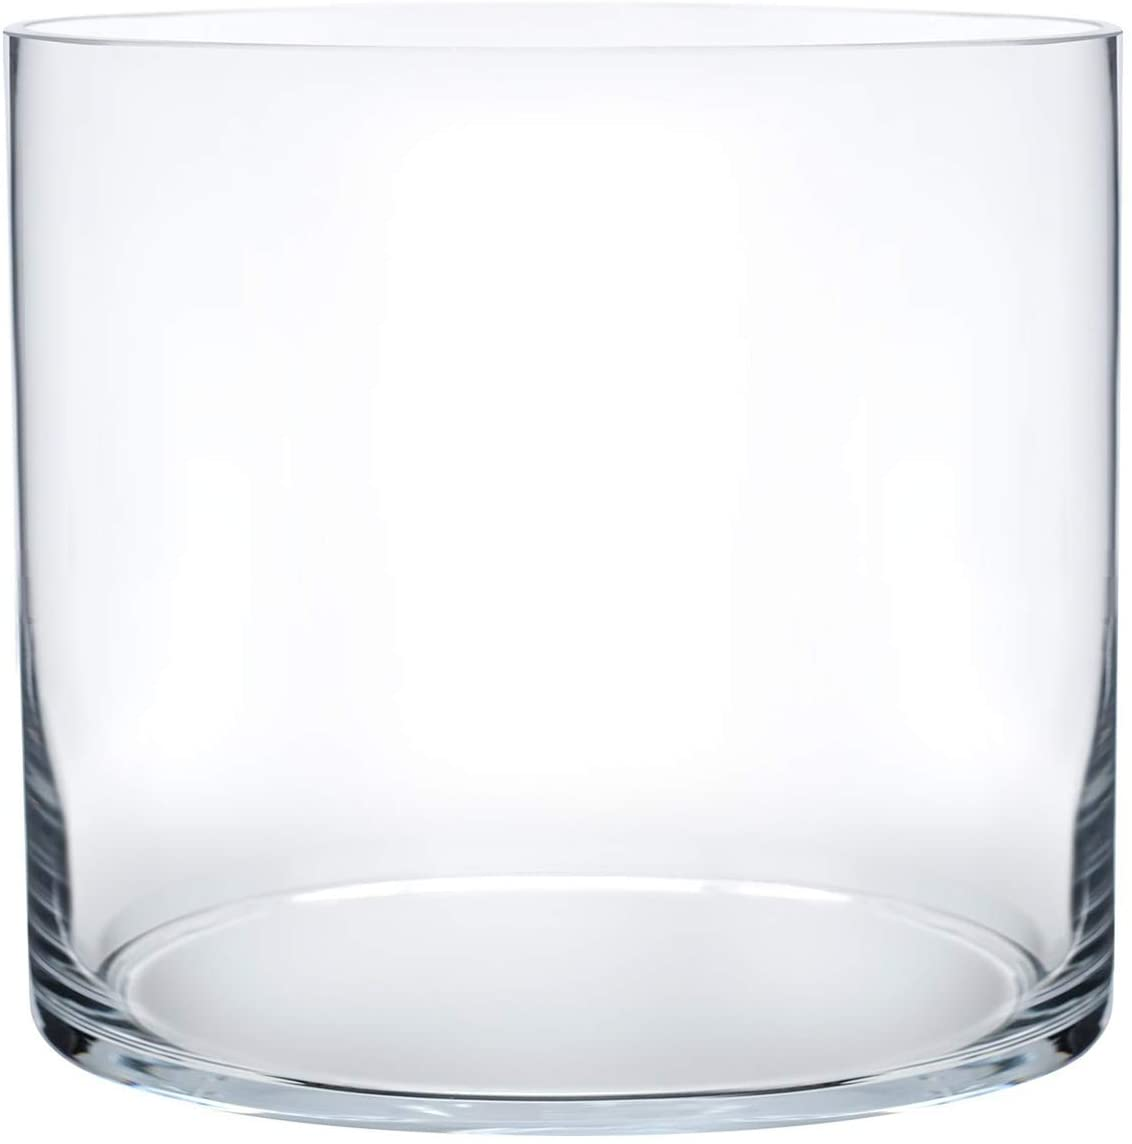 "Royal Imports Flower Glass Vase Decorative Centerpiece for Home or Wedding Cylinder Shape, 8"" Tall, 8"" Opening, Clear"